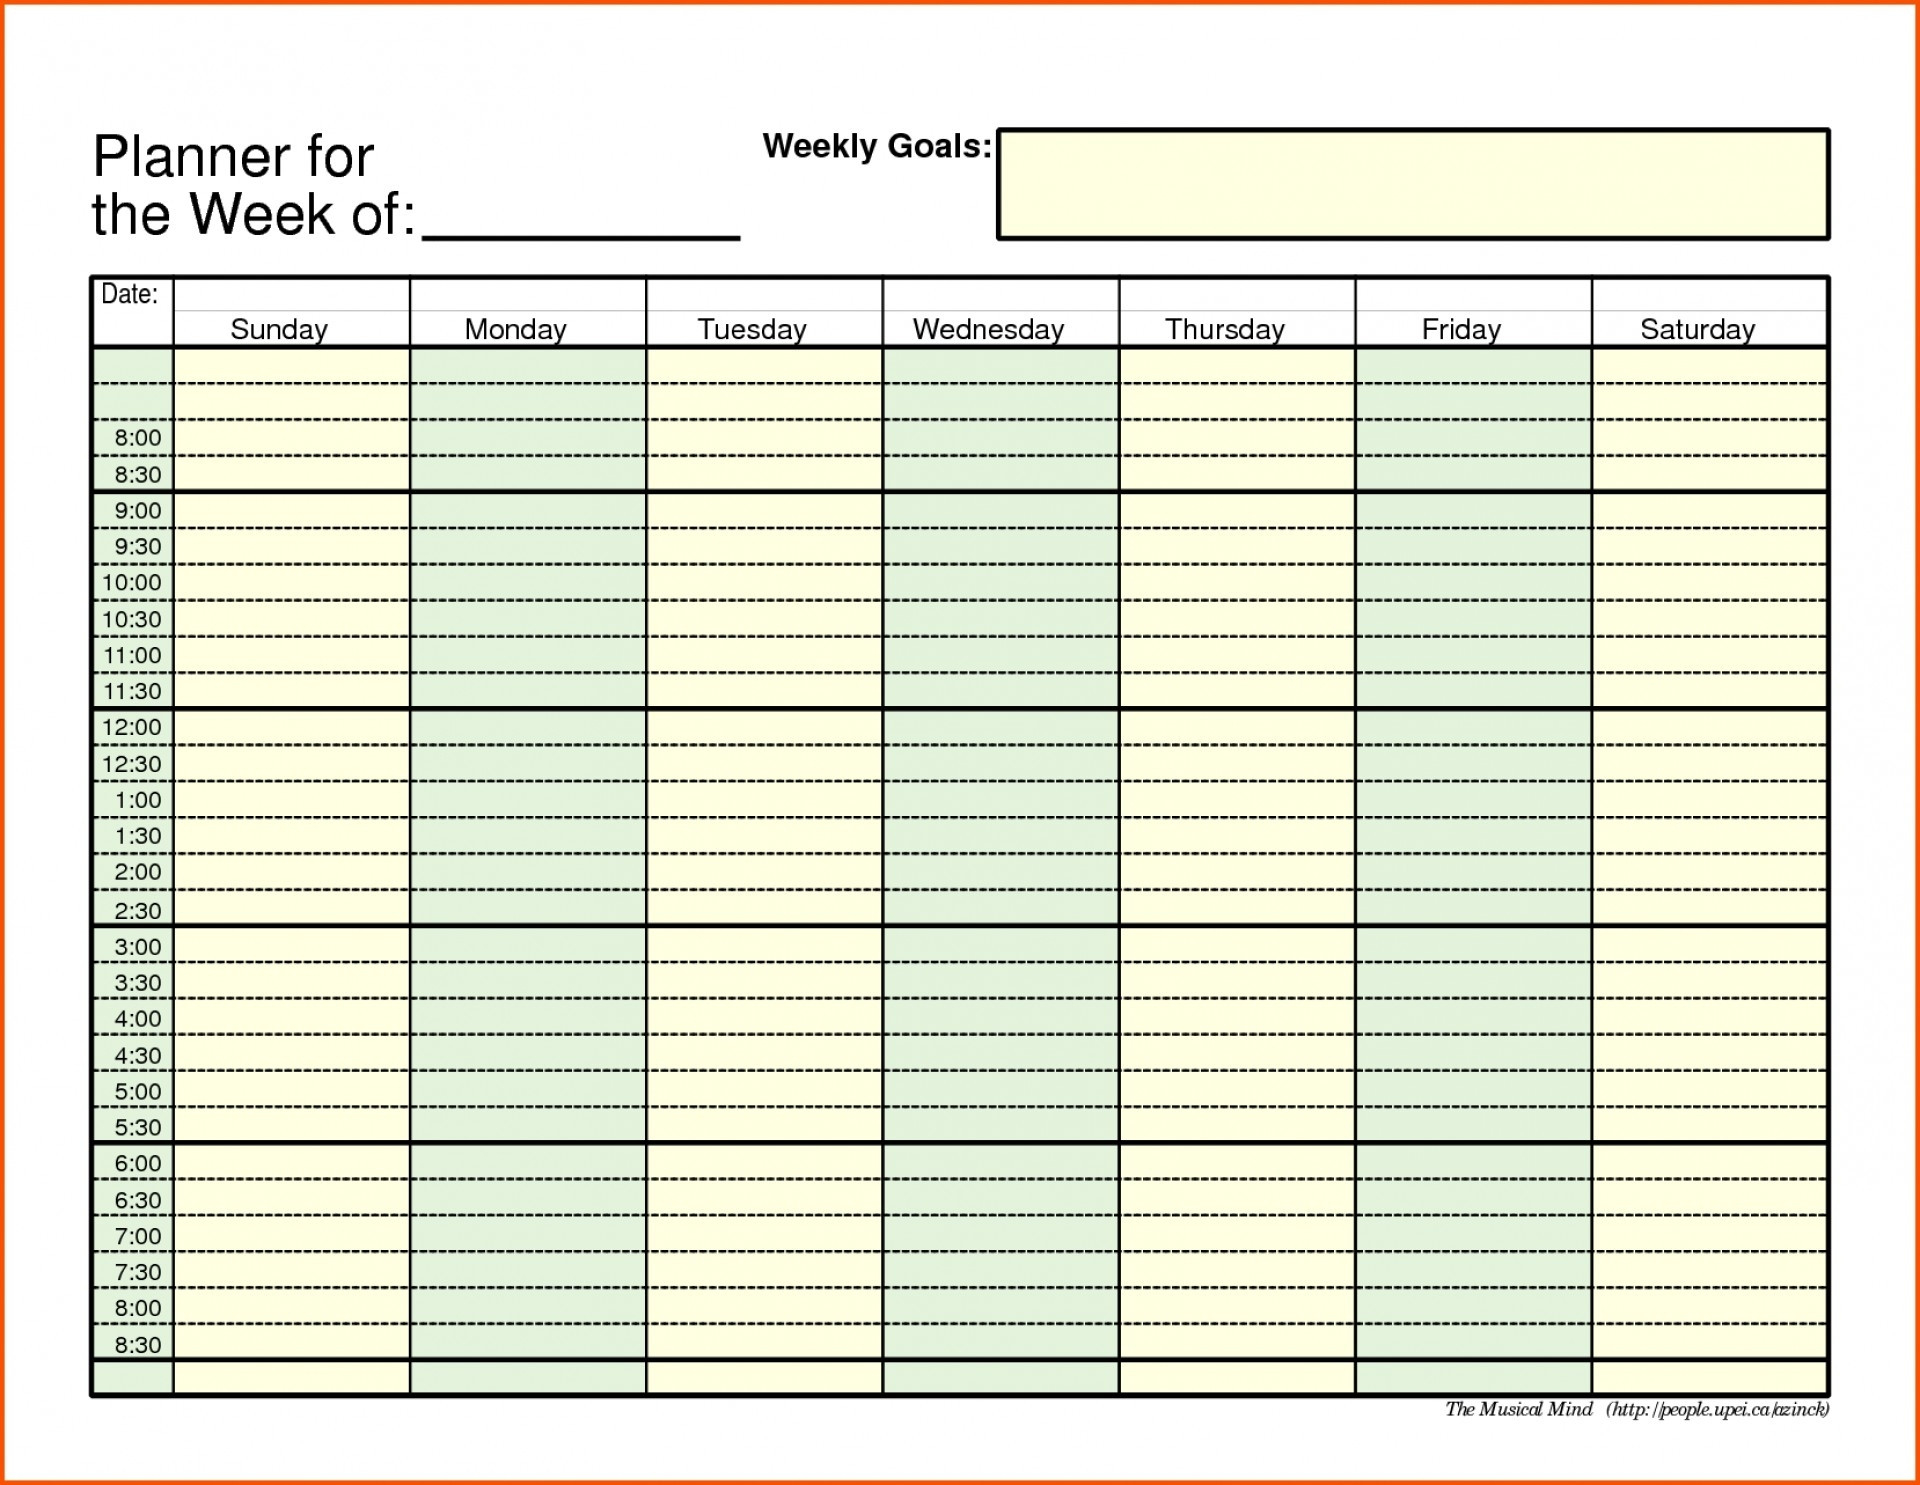 Daily Schedule With Time Slots - Calendar Inspiration Design  Calender Time Slot